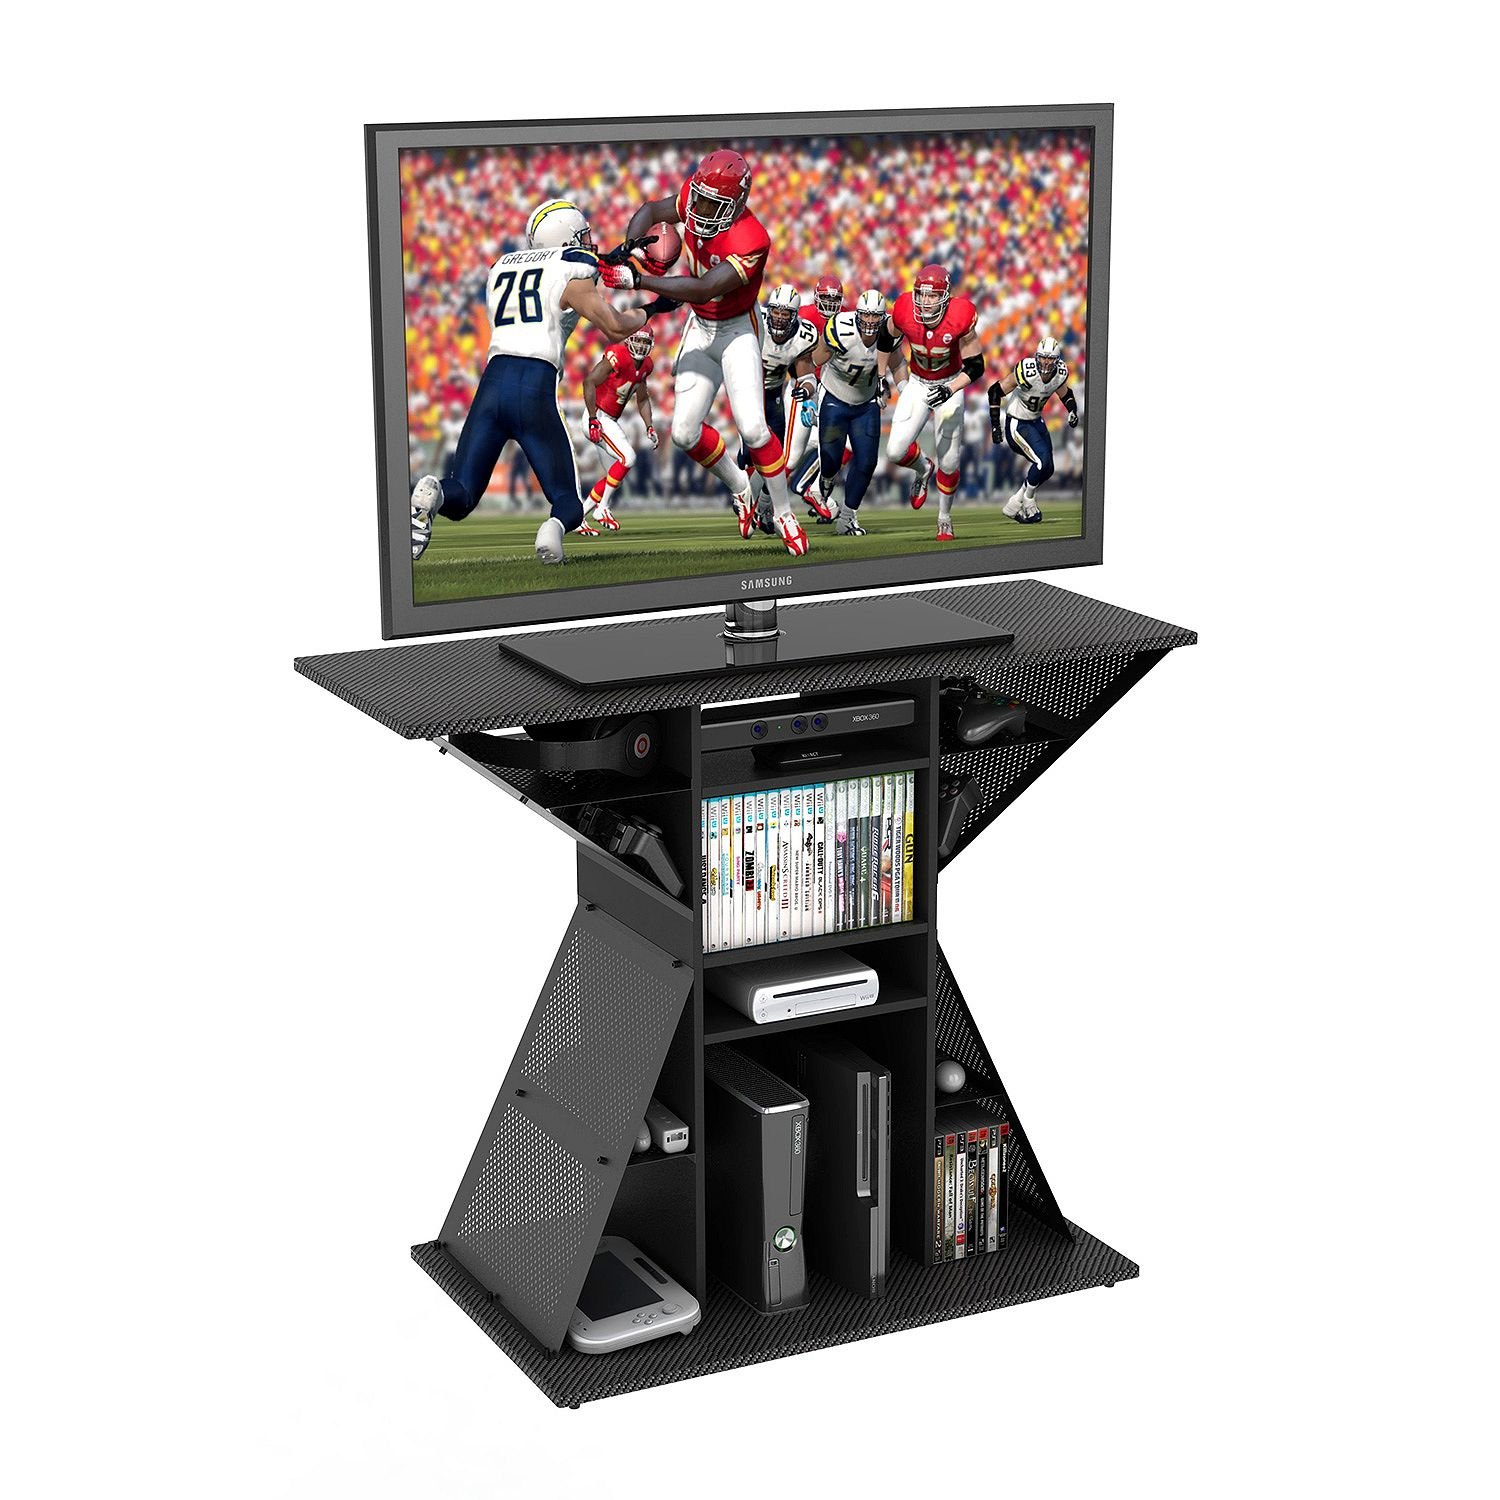 TV Video Game Stand, Gaming Storage Rack Hub Console for 42 , Xbox, PS3, PS4. Perfect Size For Any Living Room Or Bedroom In Your Home.